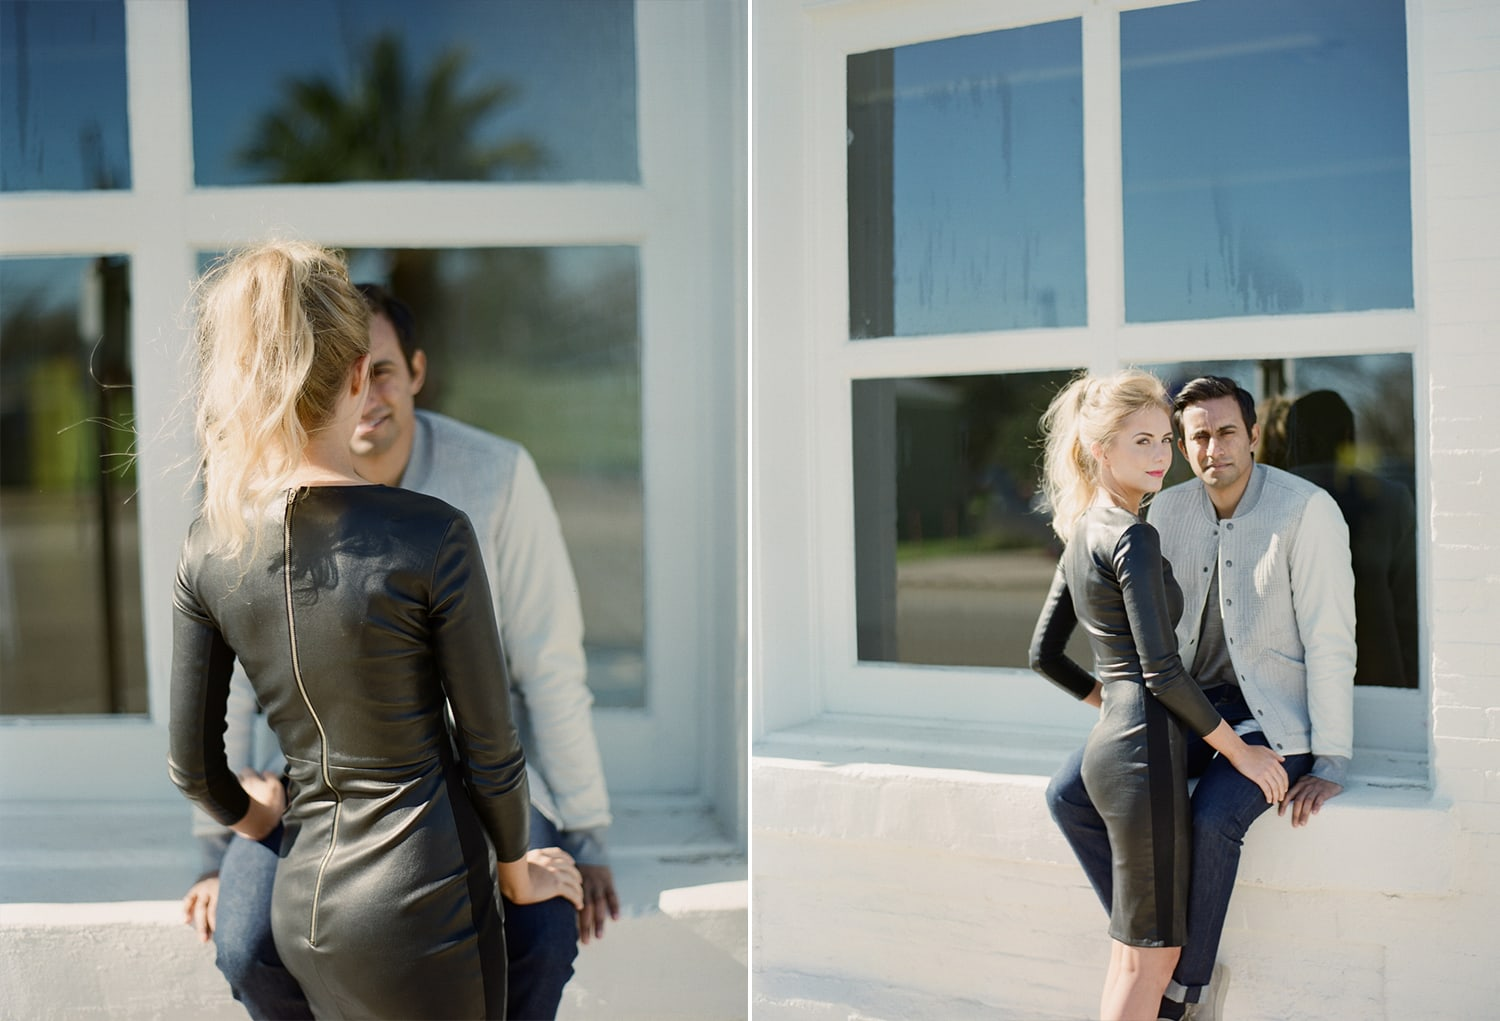 ONE_ELEVEN_EAST_MODERN_ENGAGEMENT_SHOOT_AUSTIN_TX_BY_MATTHEW_MOORE_PHOTOGRAPHY_00227.jpg